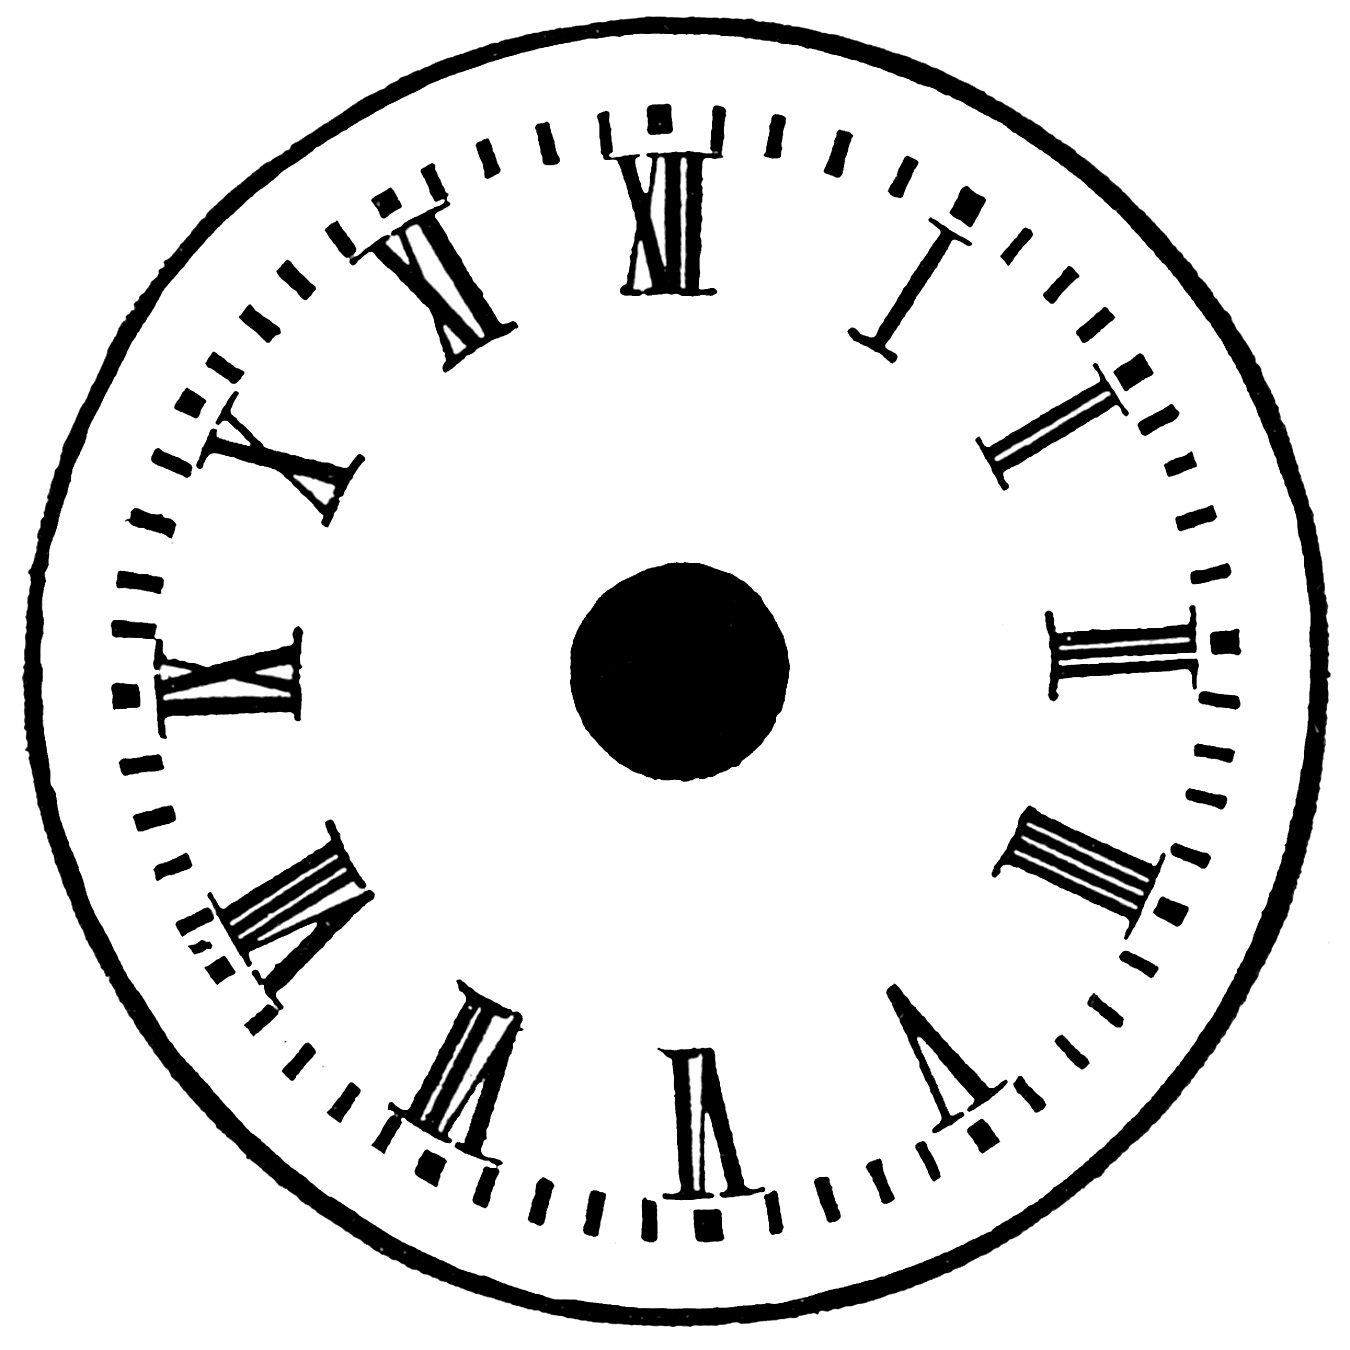 Images Of Clocks Without Hands